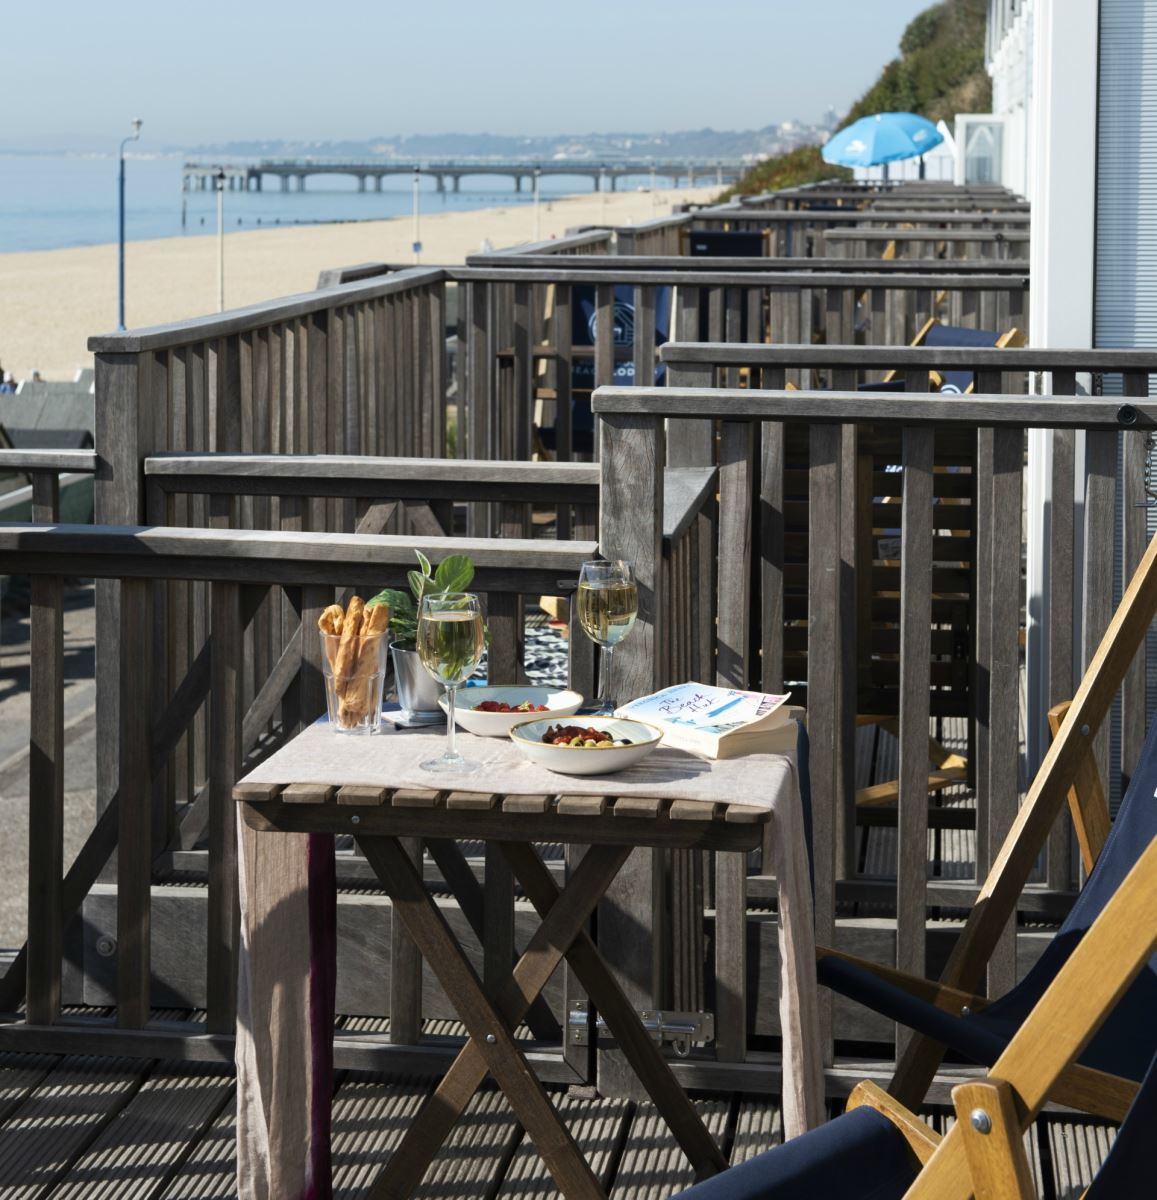 An outside shot of the Beach Lodges on a bright and warm day, featuring two deck chairs with a table featuring small dishes of olives and strawberries, bread sticks and two glasses of wine